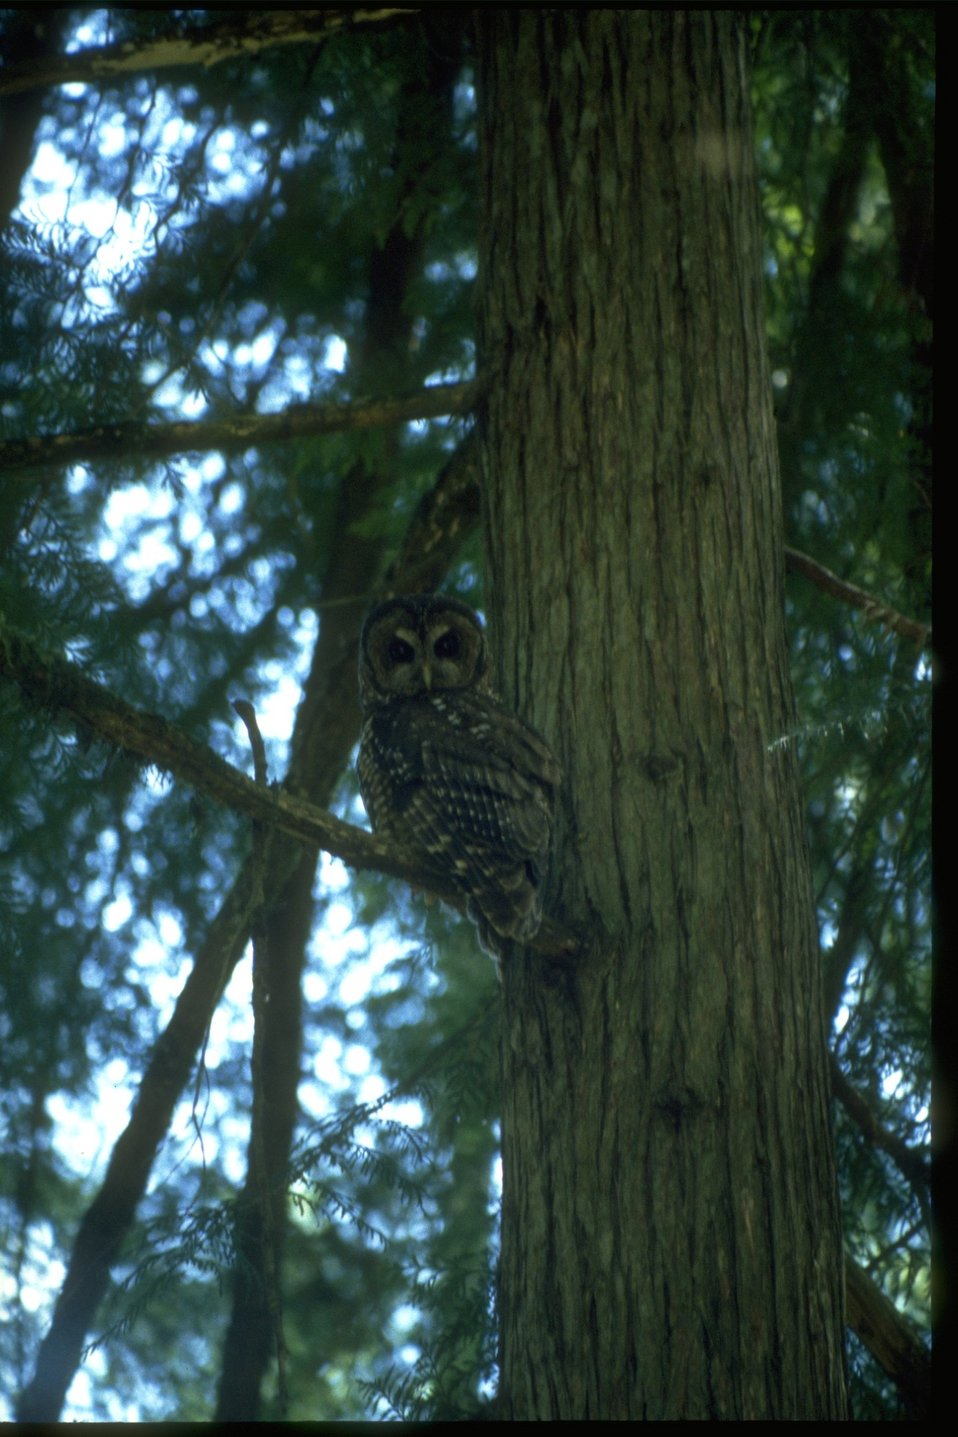 Northern Spotted Owl perched on a branch.